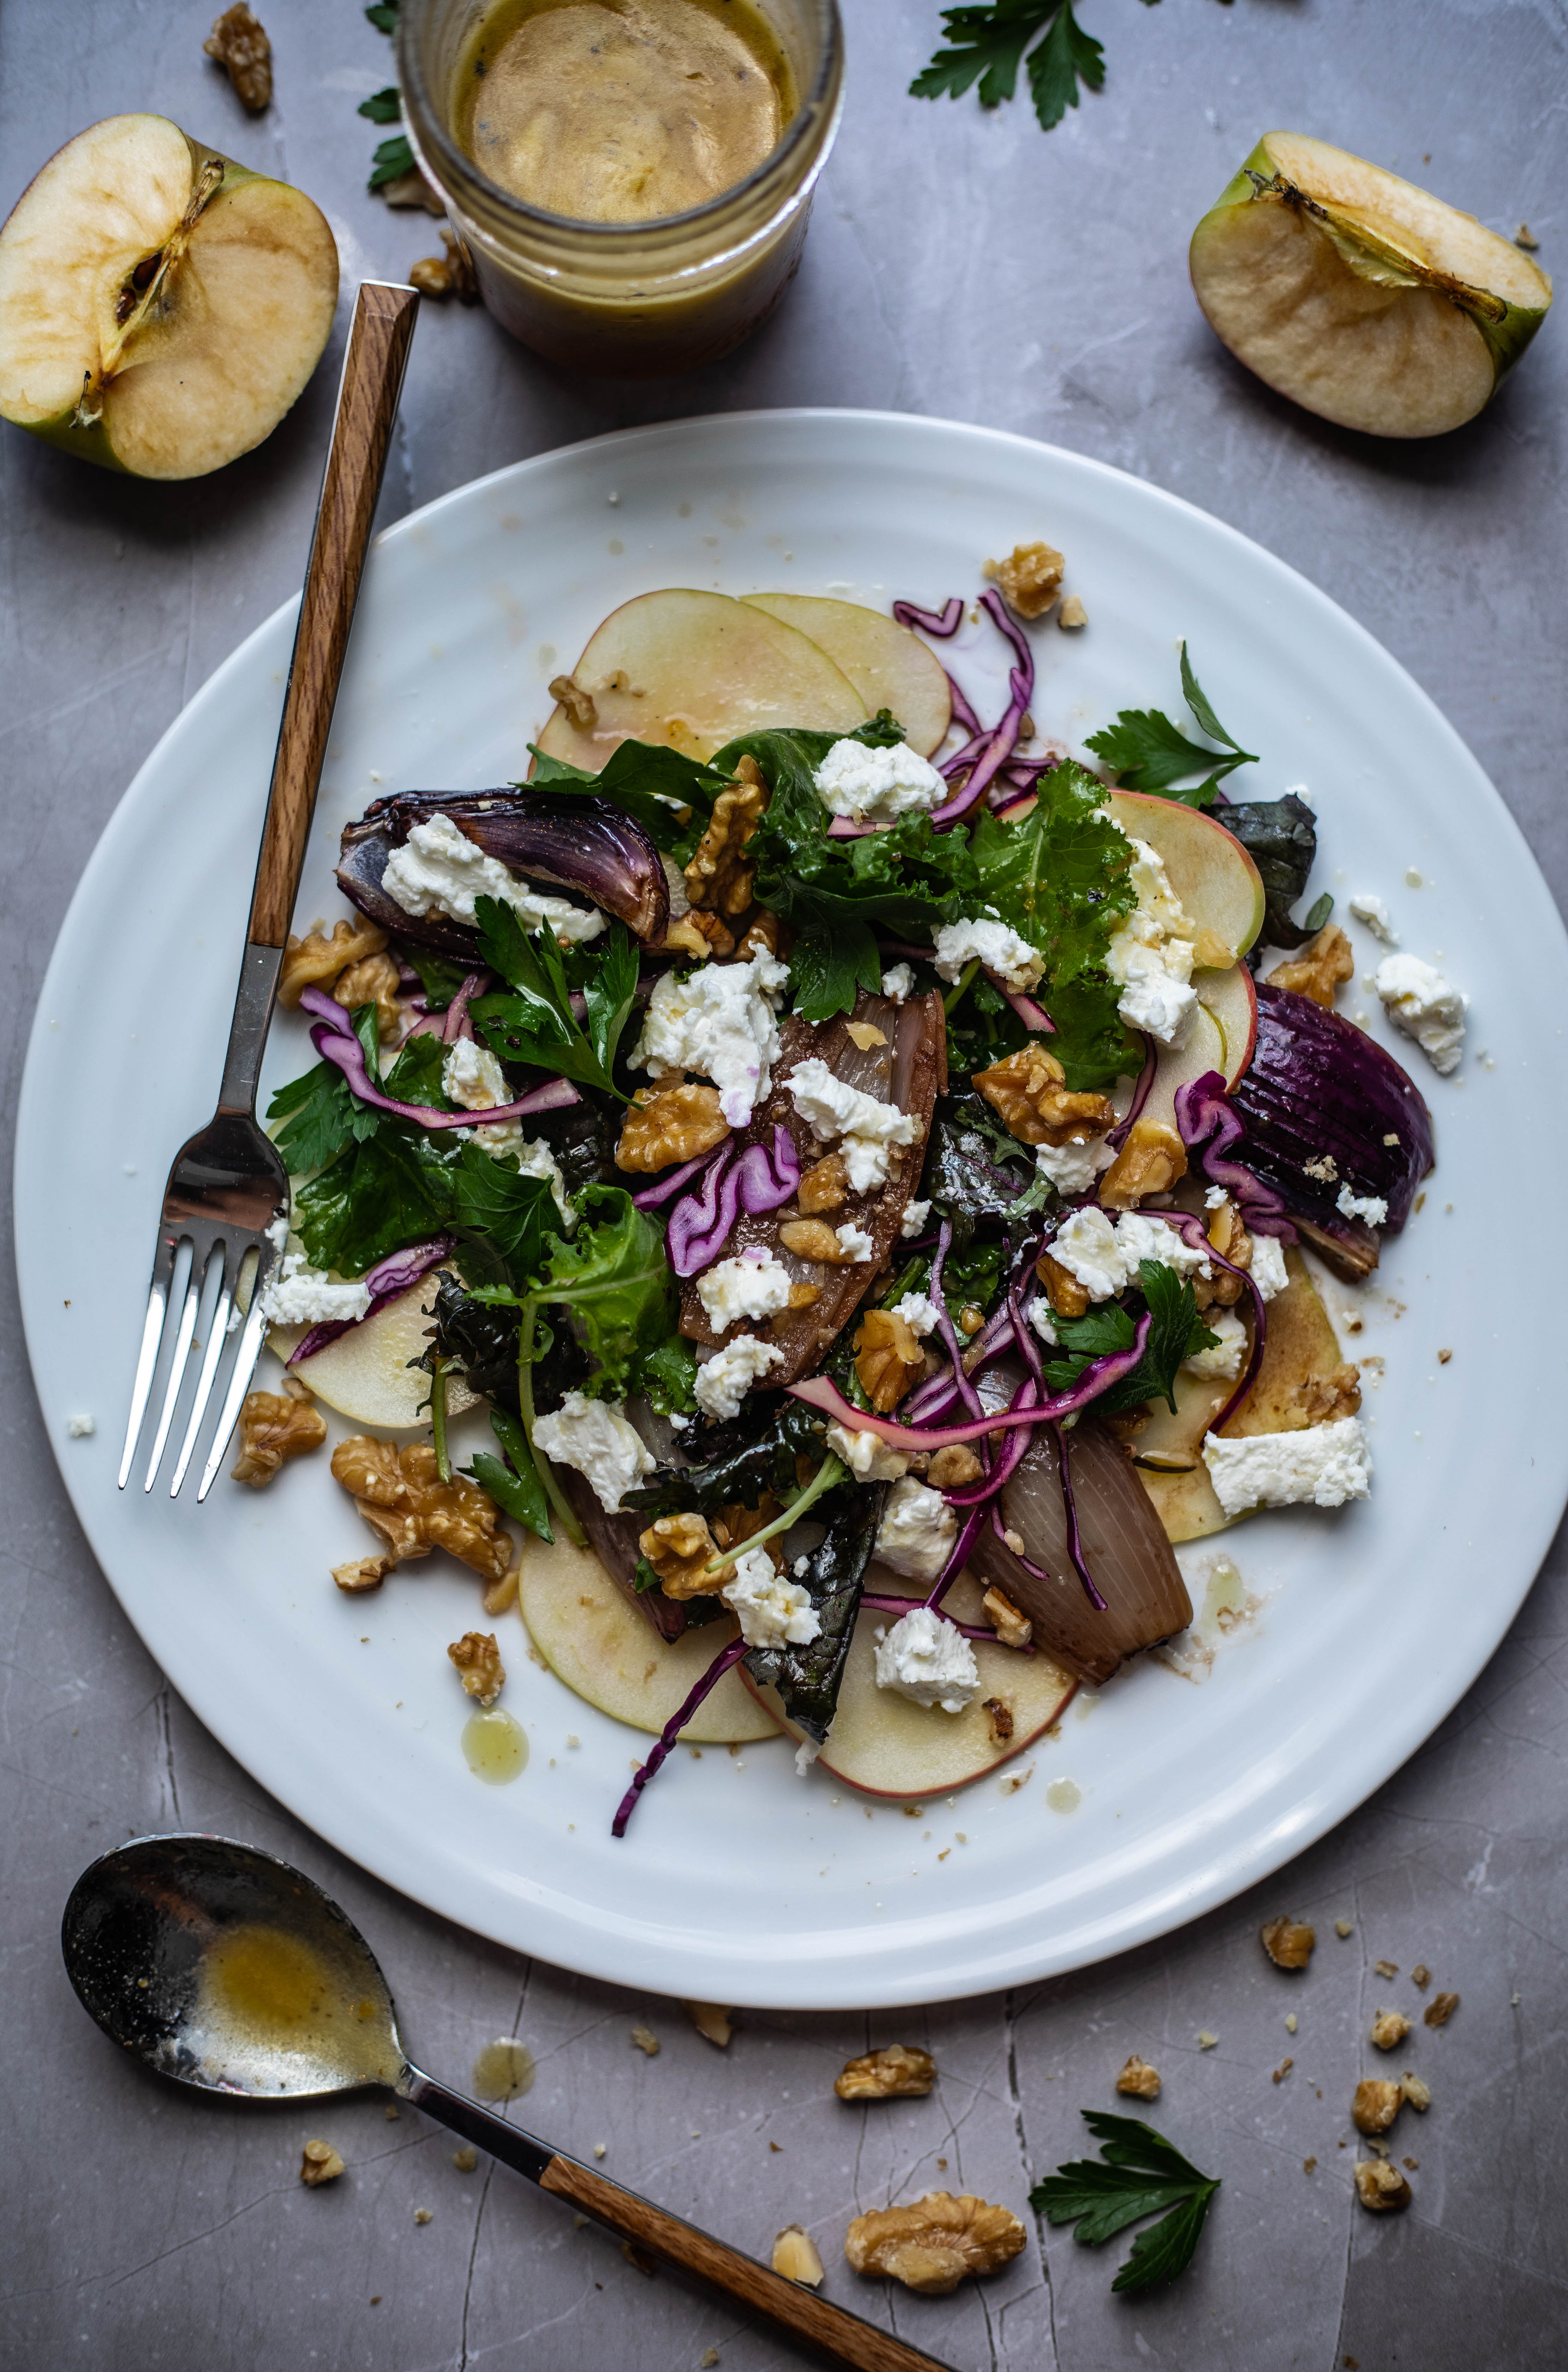 Apple & Walnut Salad with Goat Cheese, Roasted Shallots and a Maple & Cider Vinaigrette